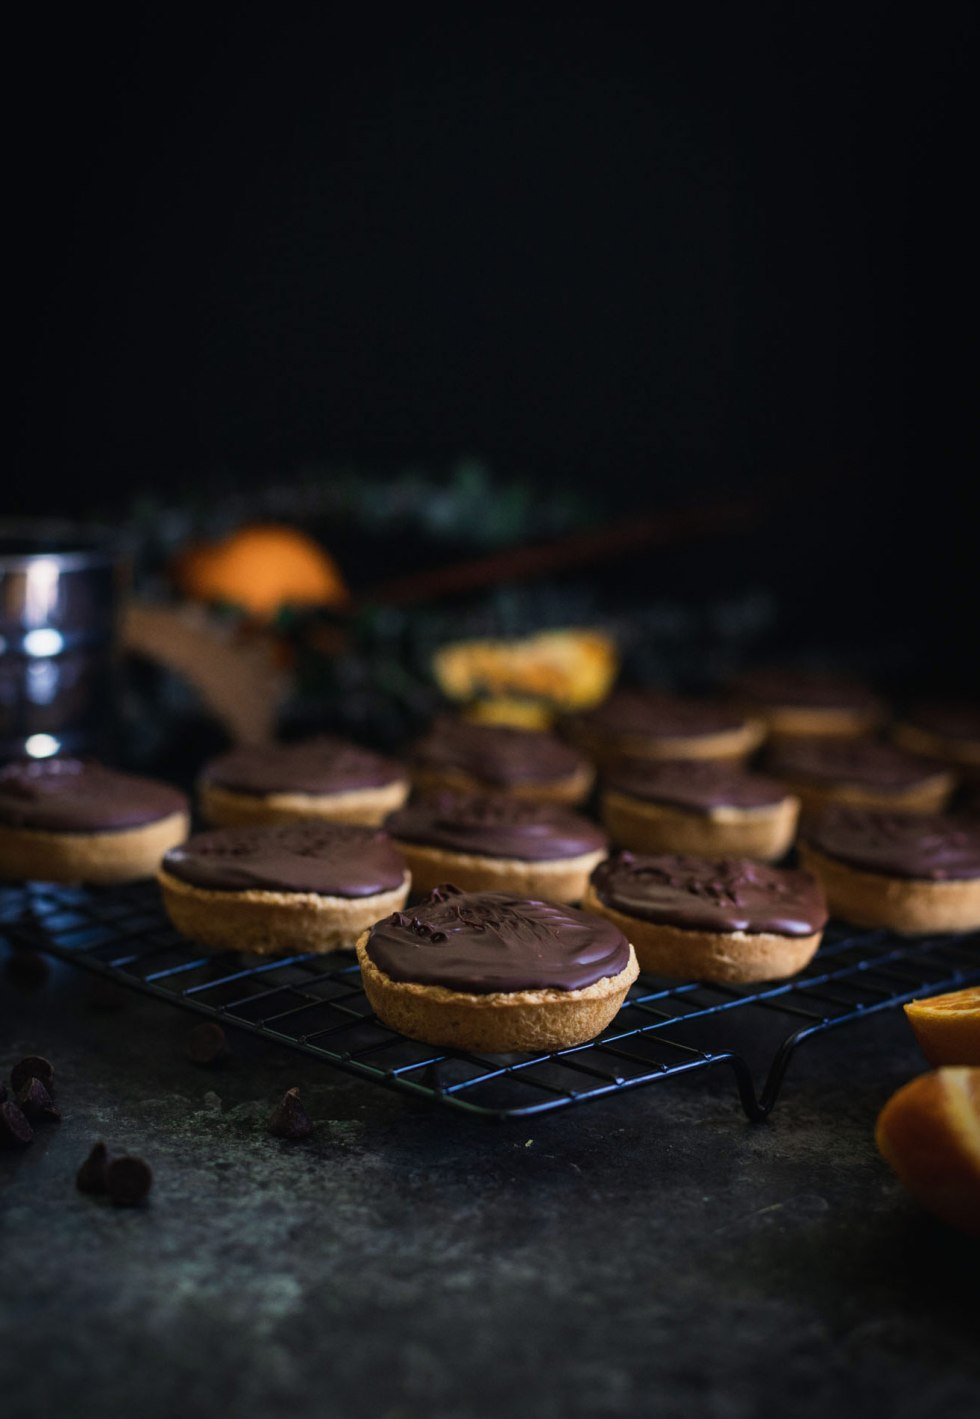 Jaffa cakes cooling on a black metal rack